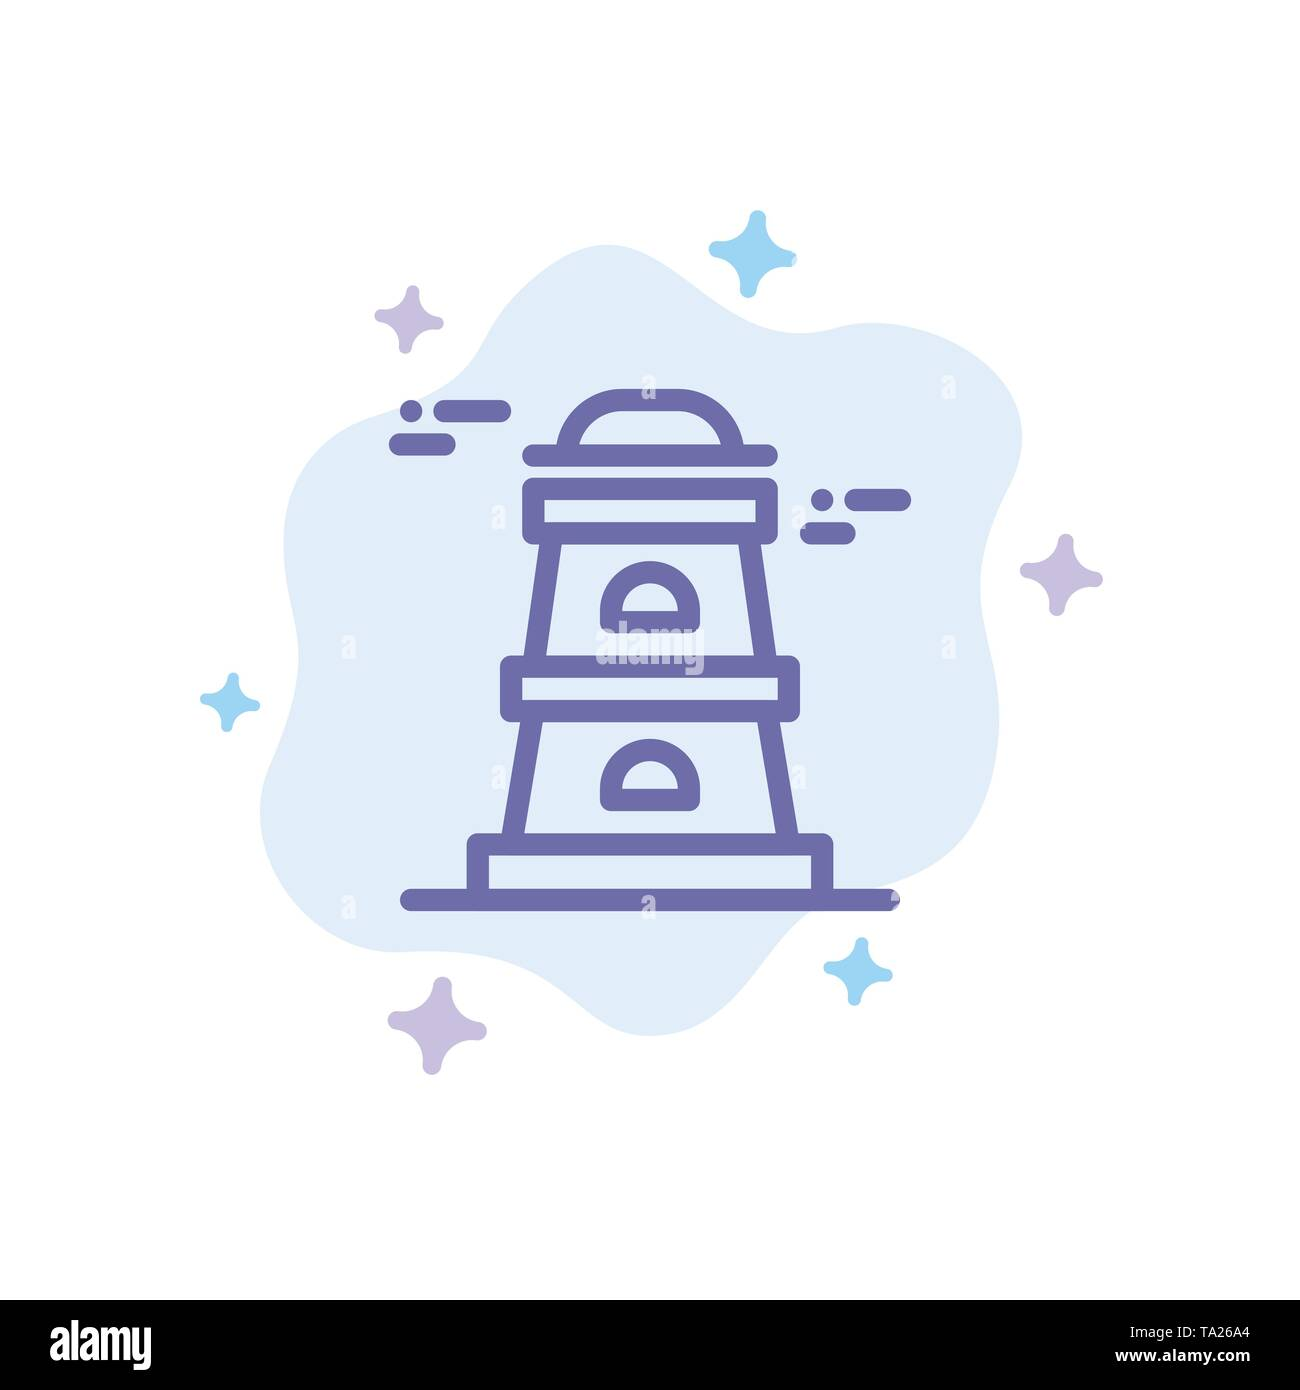 Observatory, Tower, Watchtower Blue Icon on Abstract Cloud Background - Stock Image